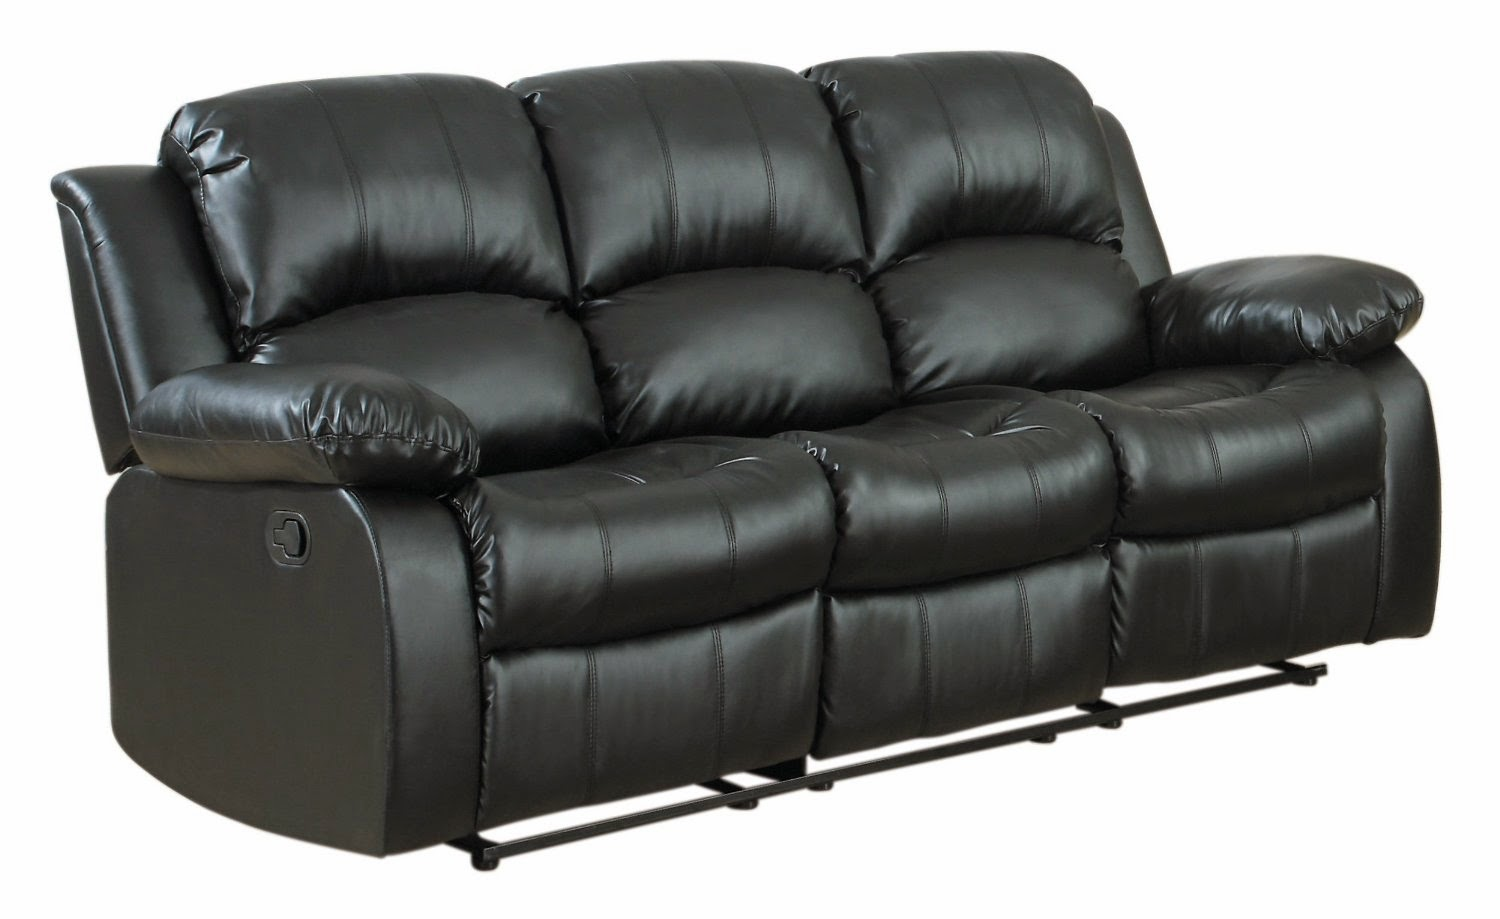 costco fabric reclining sofa pottery barn turner reviews top seller and recliner loveseat power